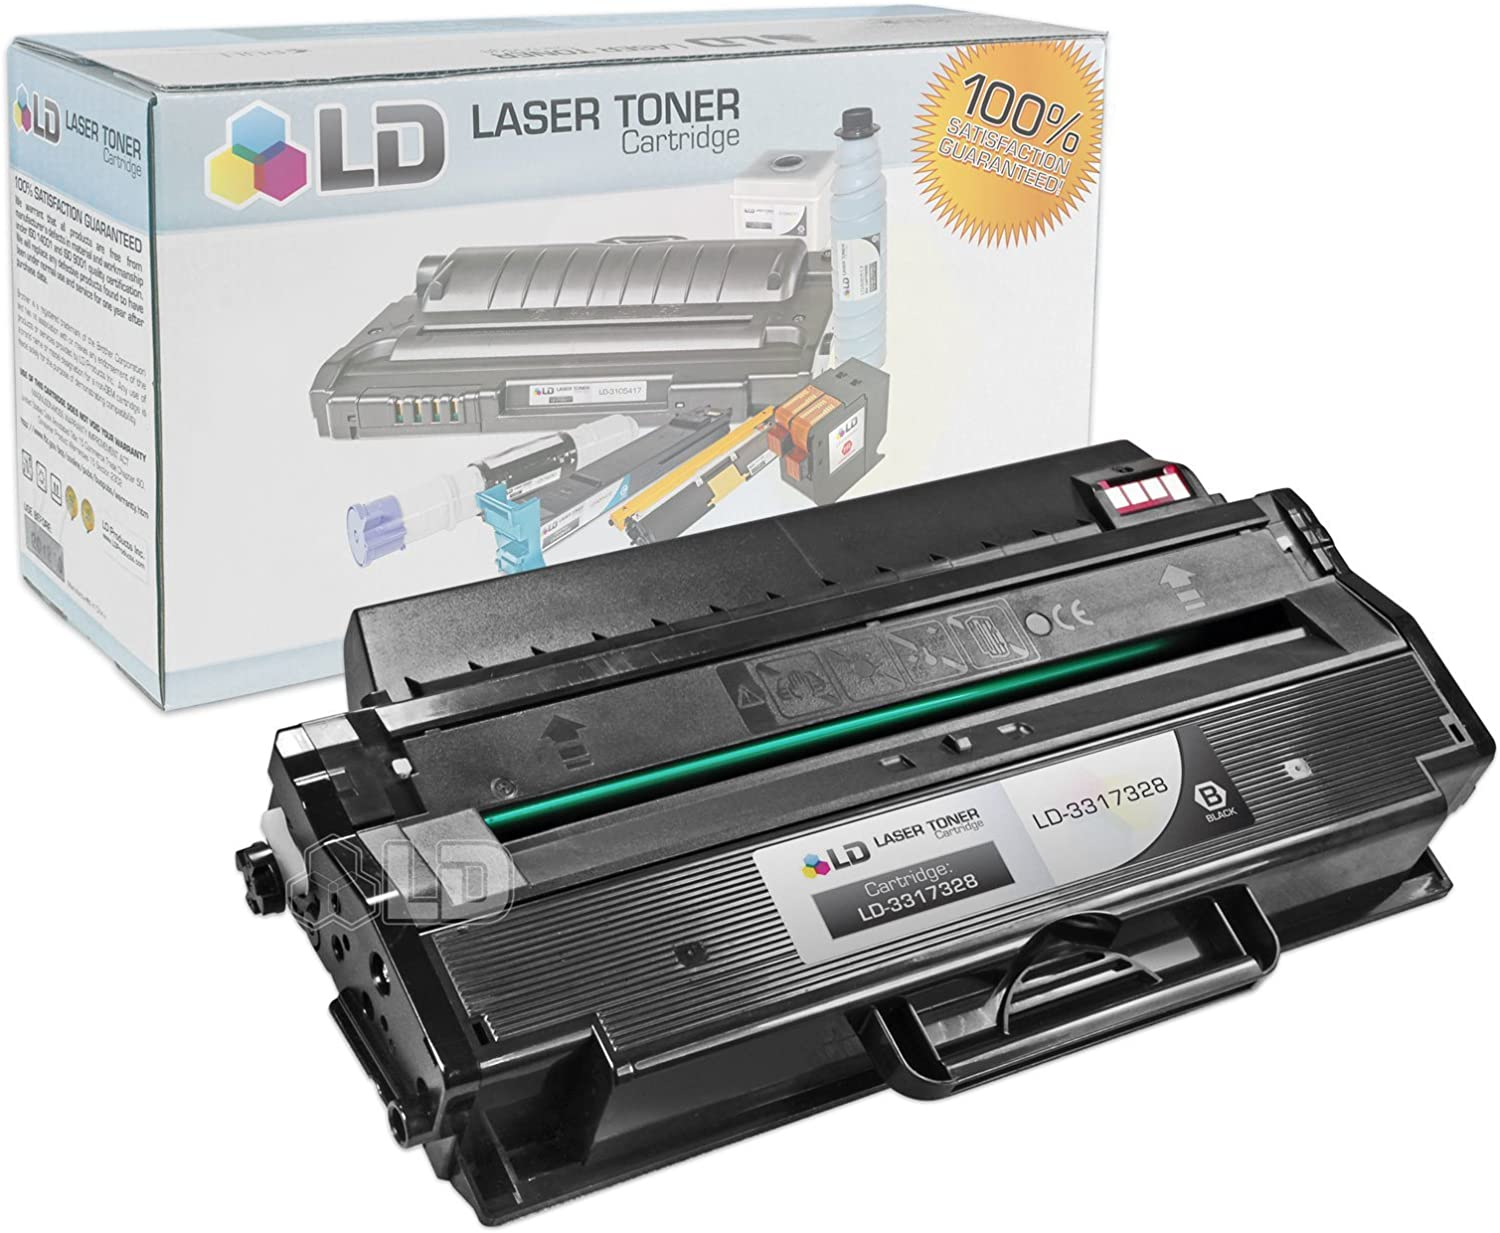 C3760DN C3760N 331-8431 331-8427 C3765 Works with: C3760 Ink /& Toner USA Compatible Toner Replacement for Dell 331-8423 C3765DNF Magenta